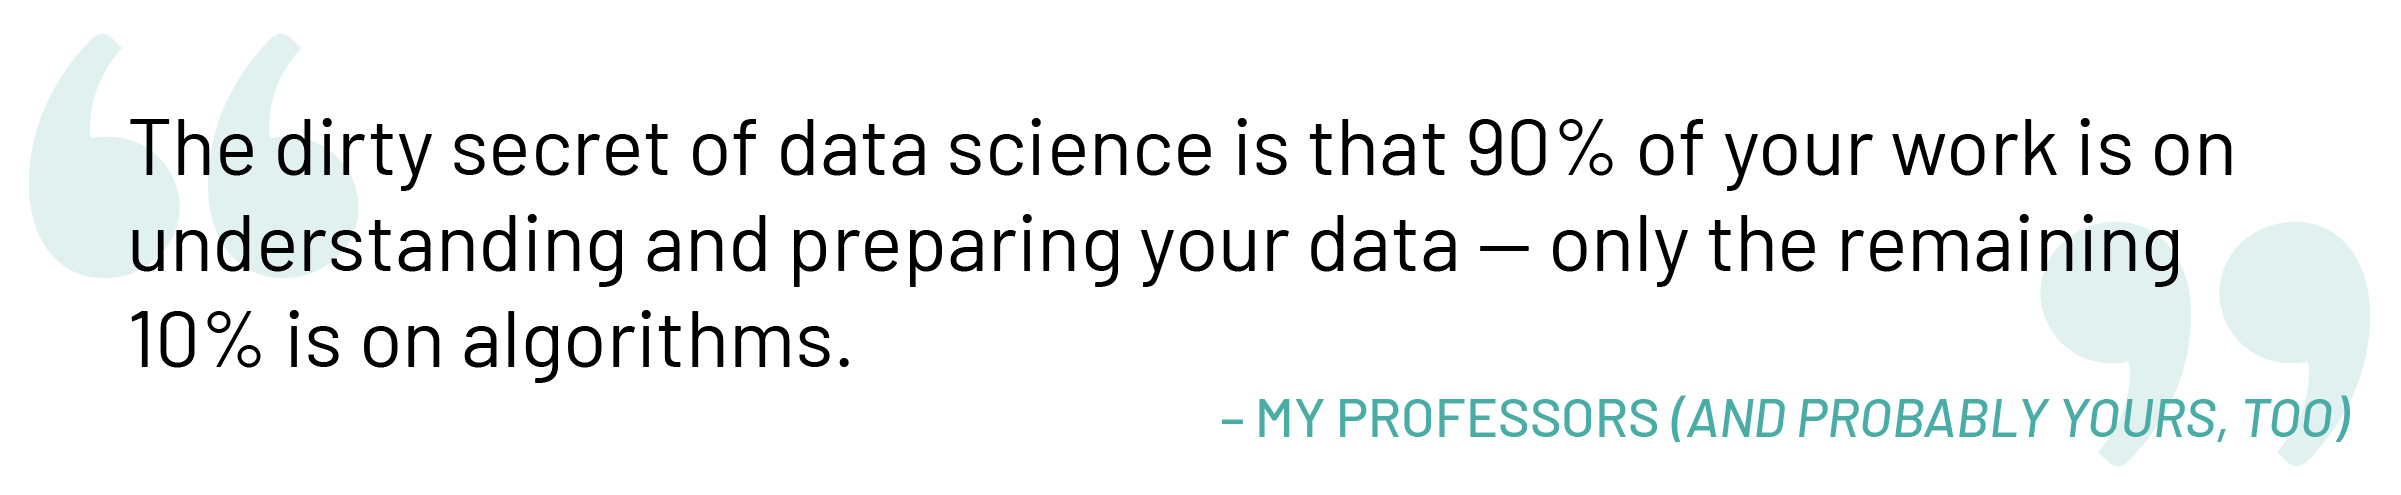 importance of data preparation quote